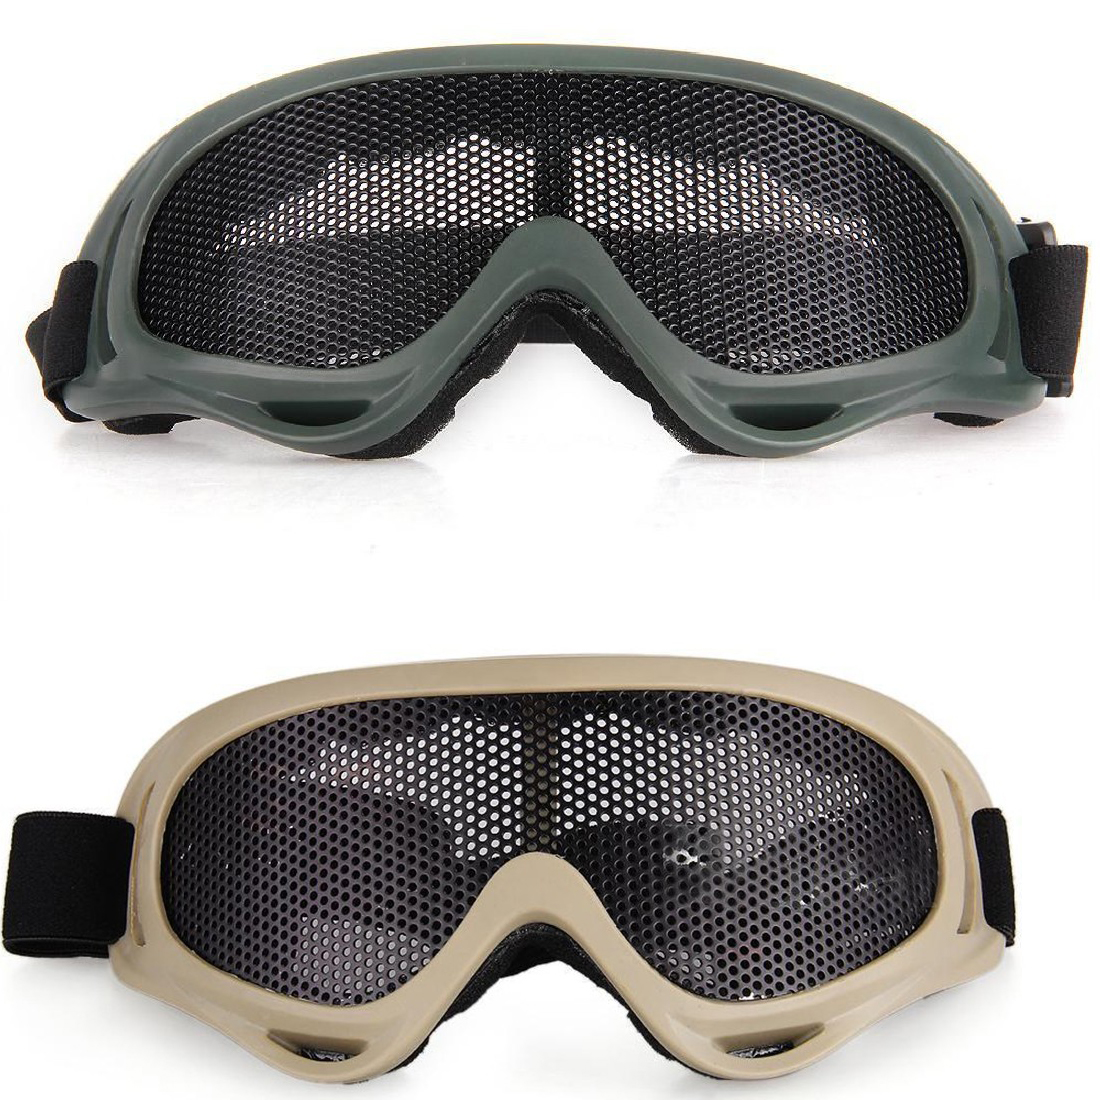 Pro Anti-Fog CS Airsoft Tactical Anti Fog Metal Mesh Big Goggles Eye Safety Protection Glasses For Airsoft Desert Hunting